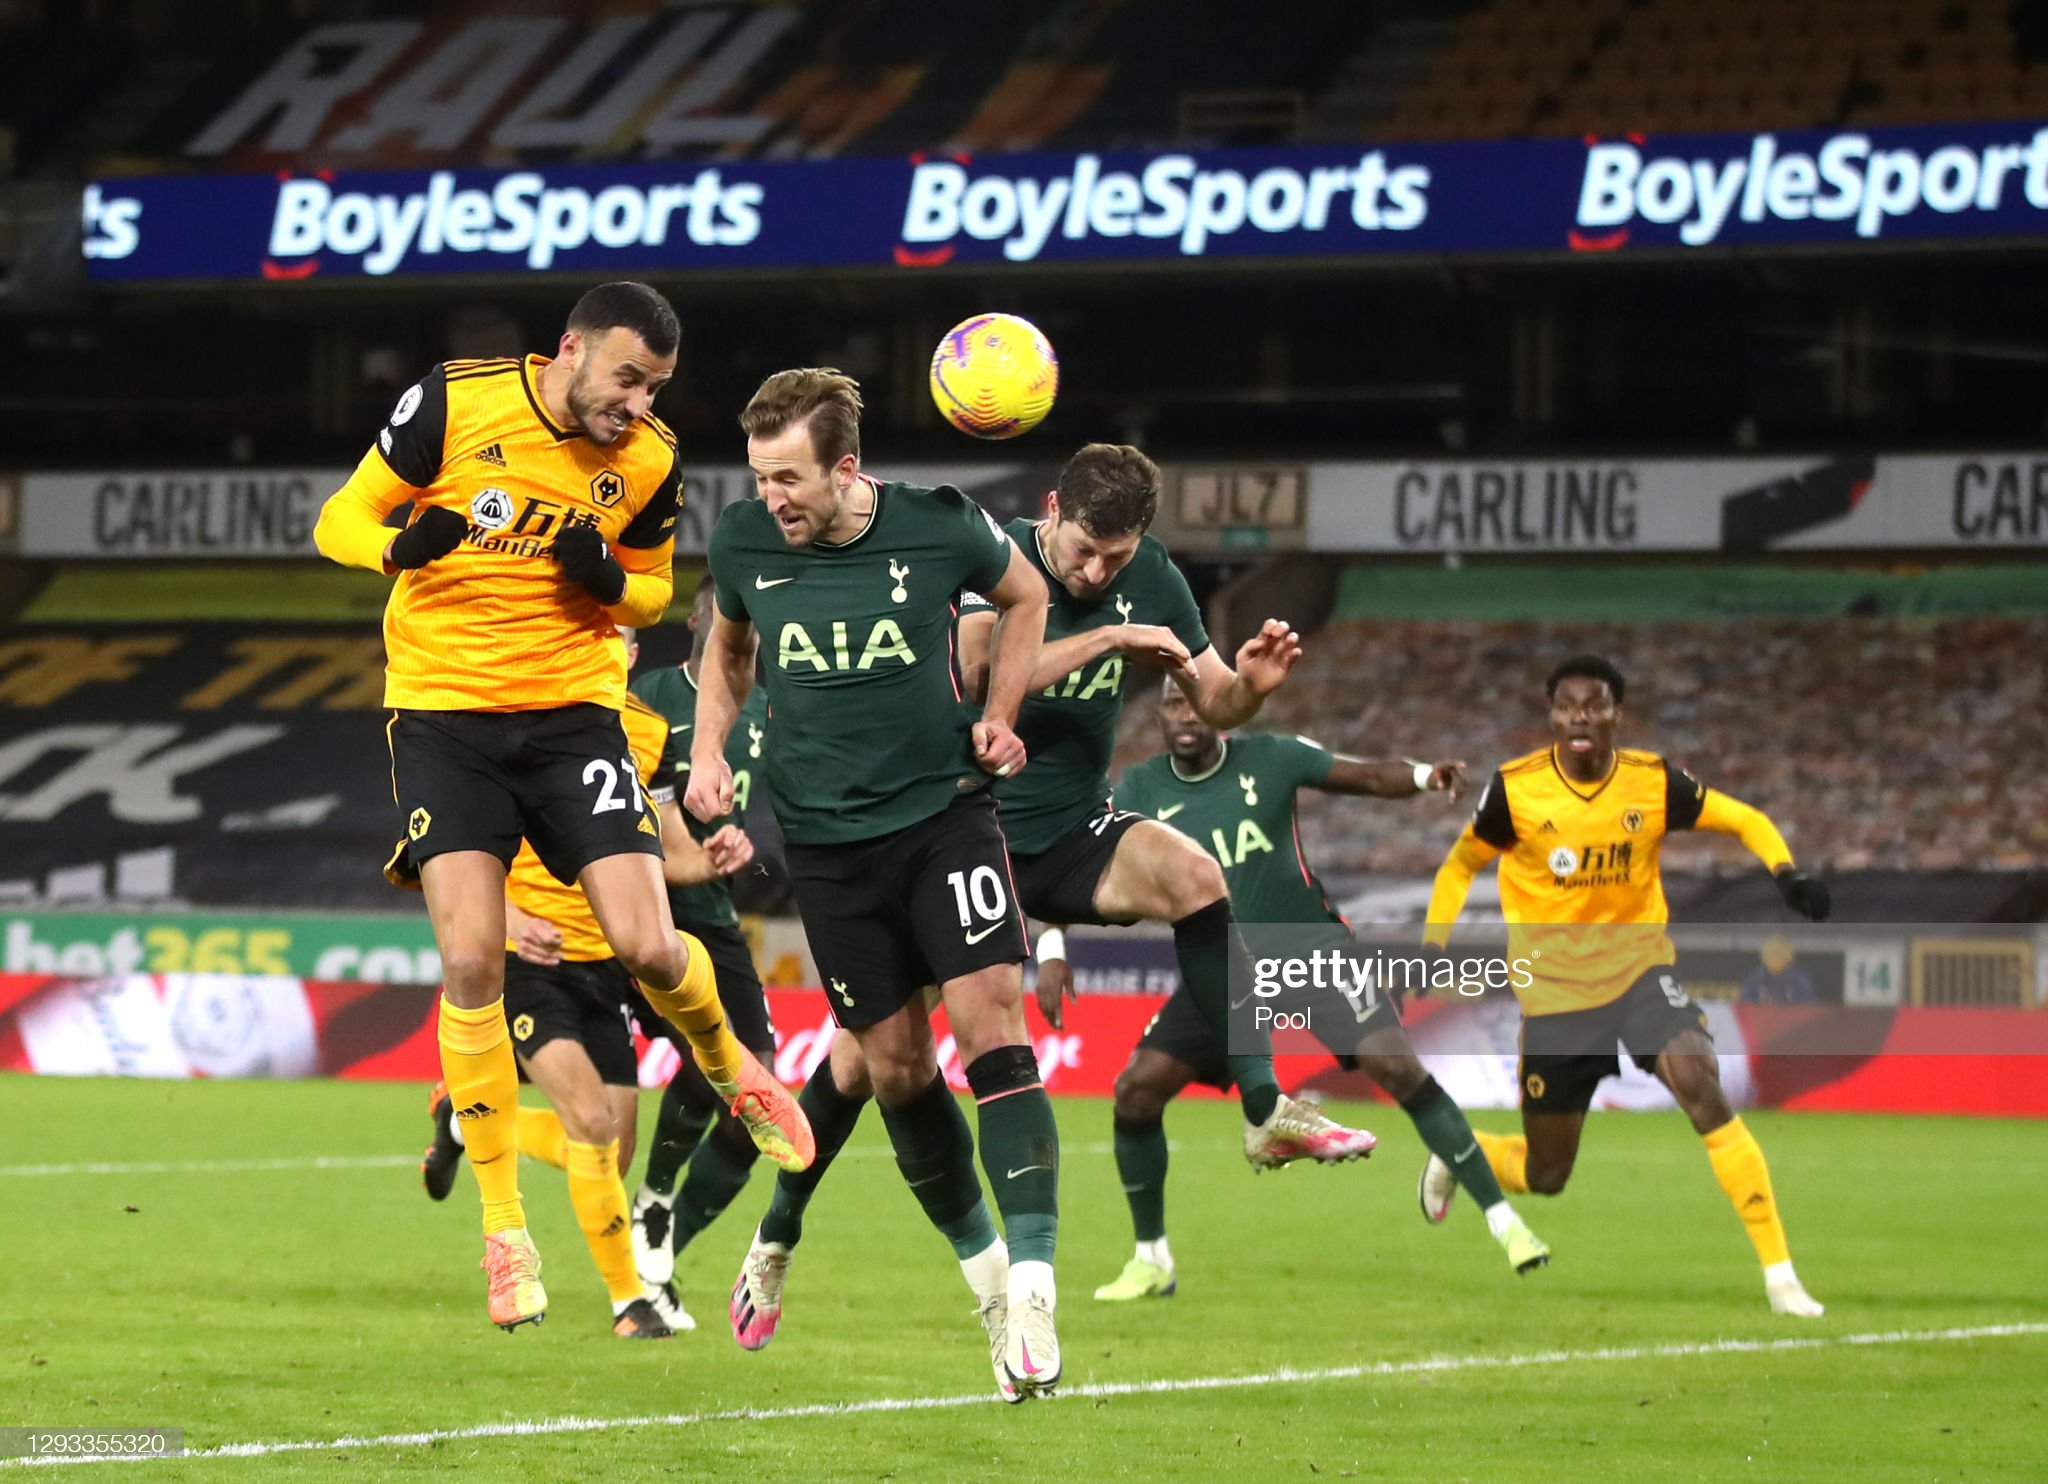 Wolverhampton Wanderers v Tottenham Hotspur - Premier League : News Photo